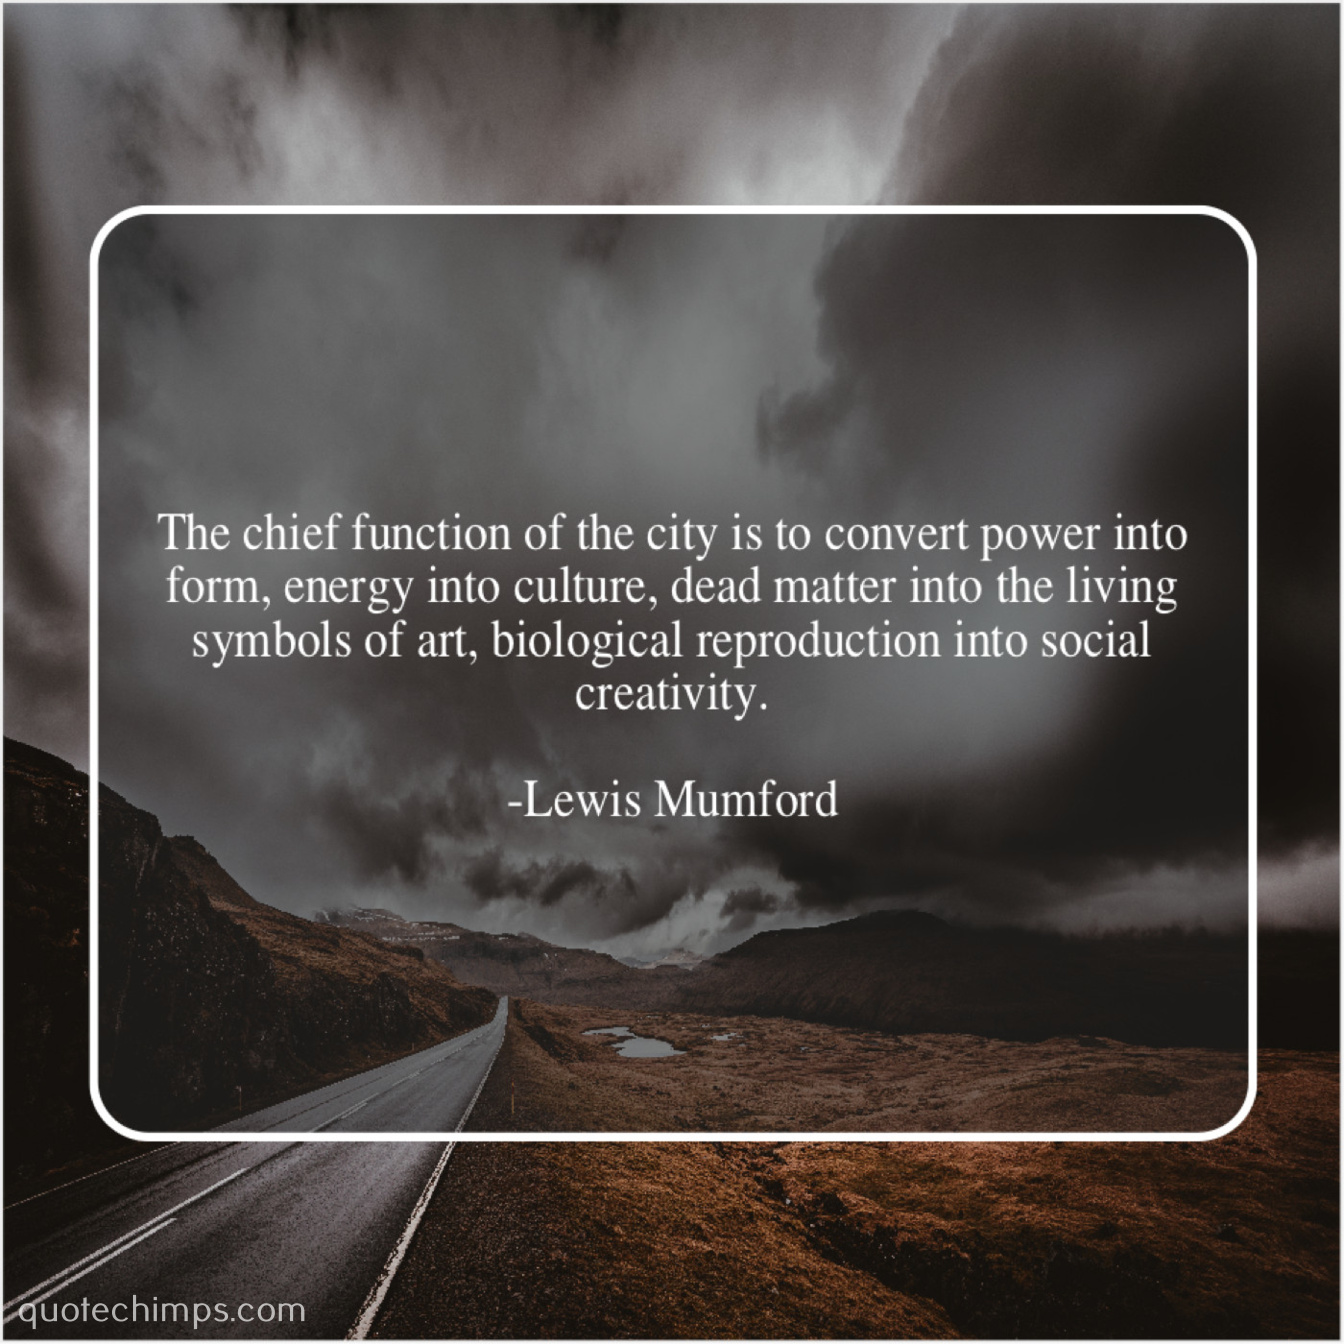 Top 100 Lewis Mumford Quotes | 2021 Edition | Free Images